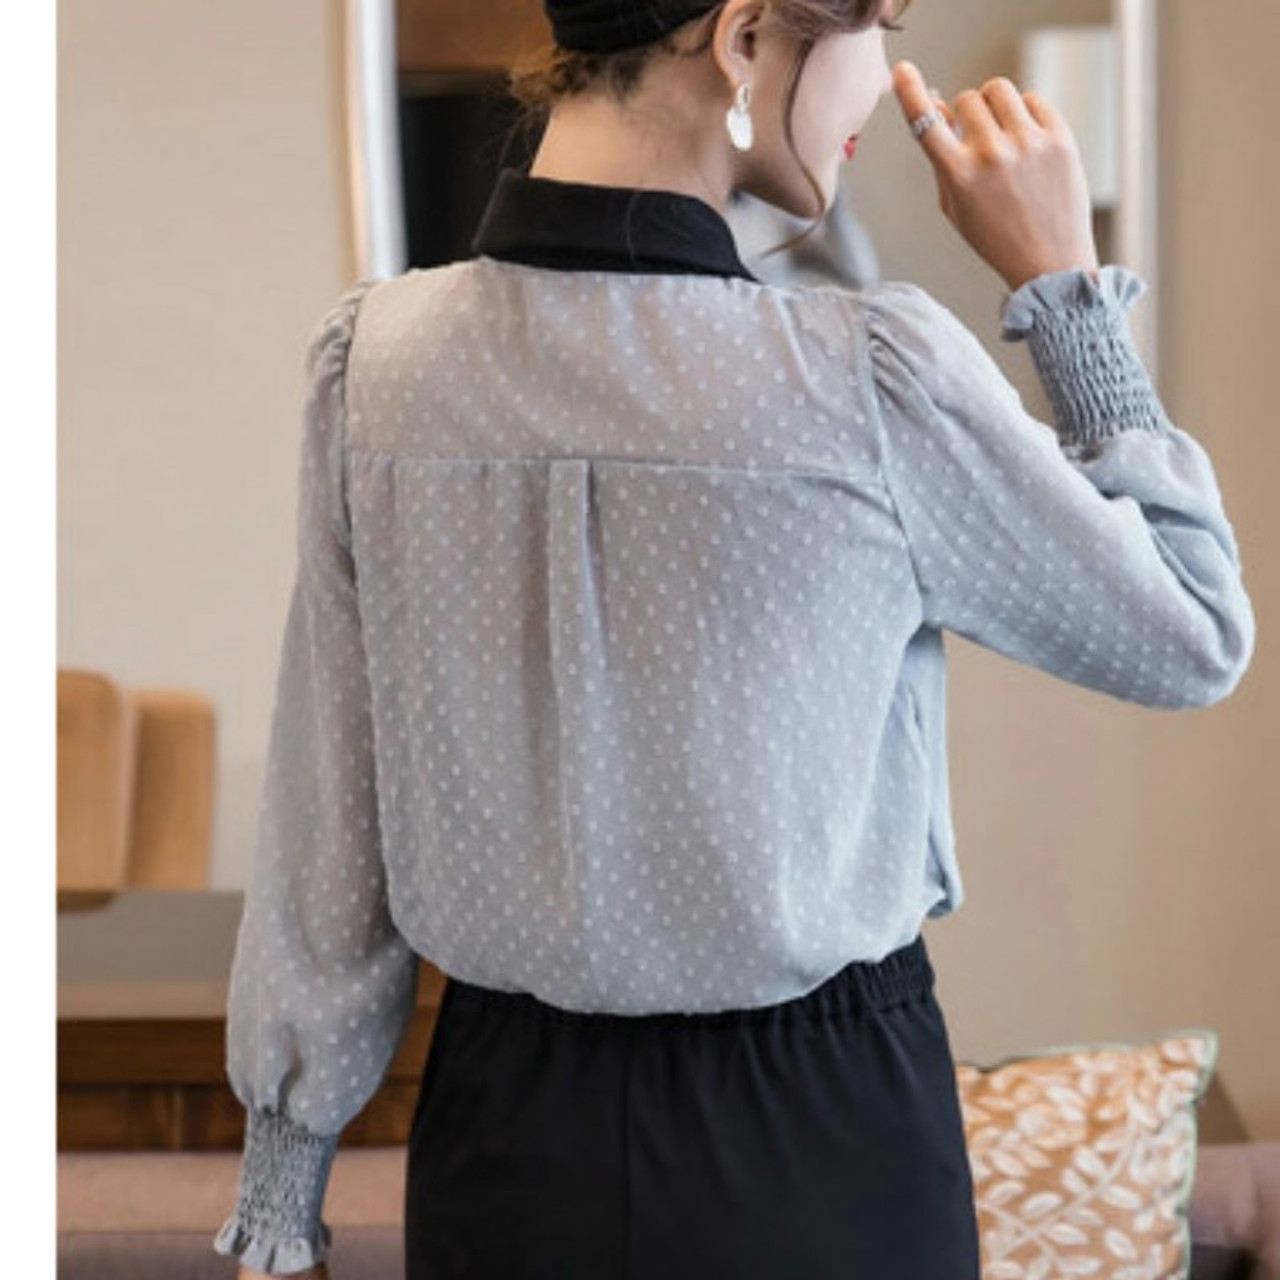 e7d31c92263e7 ... Fashion Womens Tops And Blouses 2019 Long Sleeve Shirt Women Blusa  Feminina Ladies Tops Plus Size ...